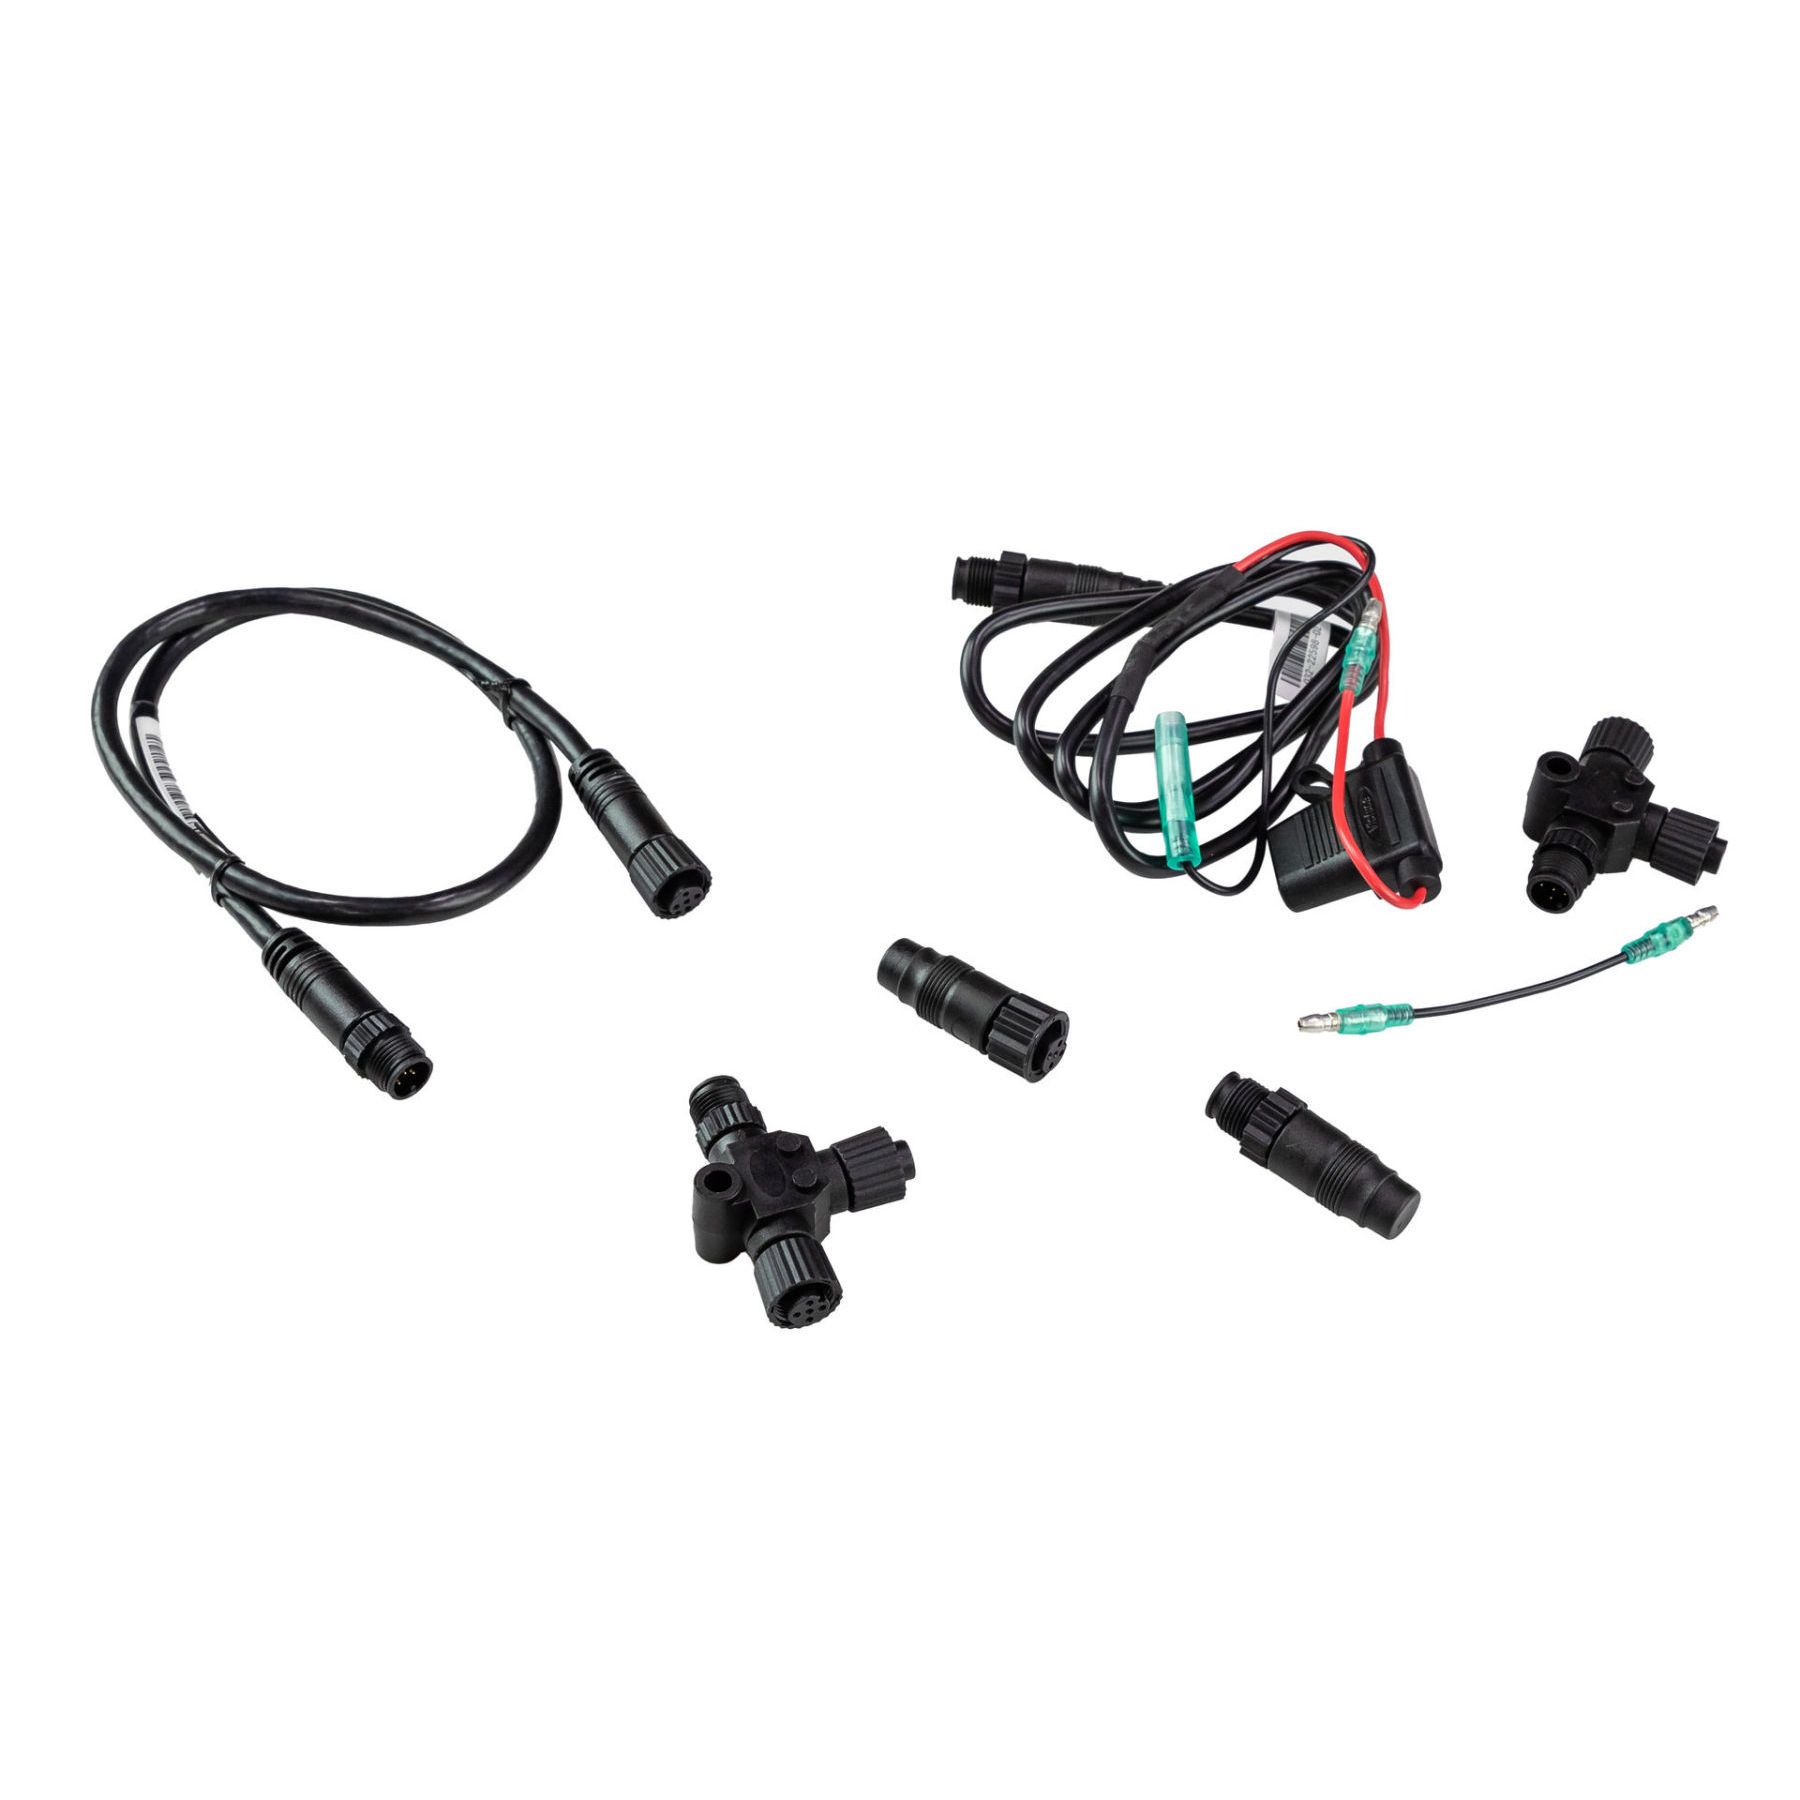 Starter Kit For Creating A Network Nmea2000 3600188l00000